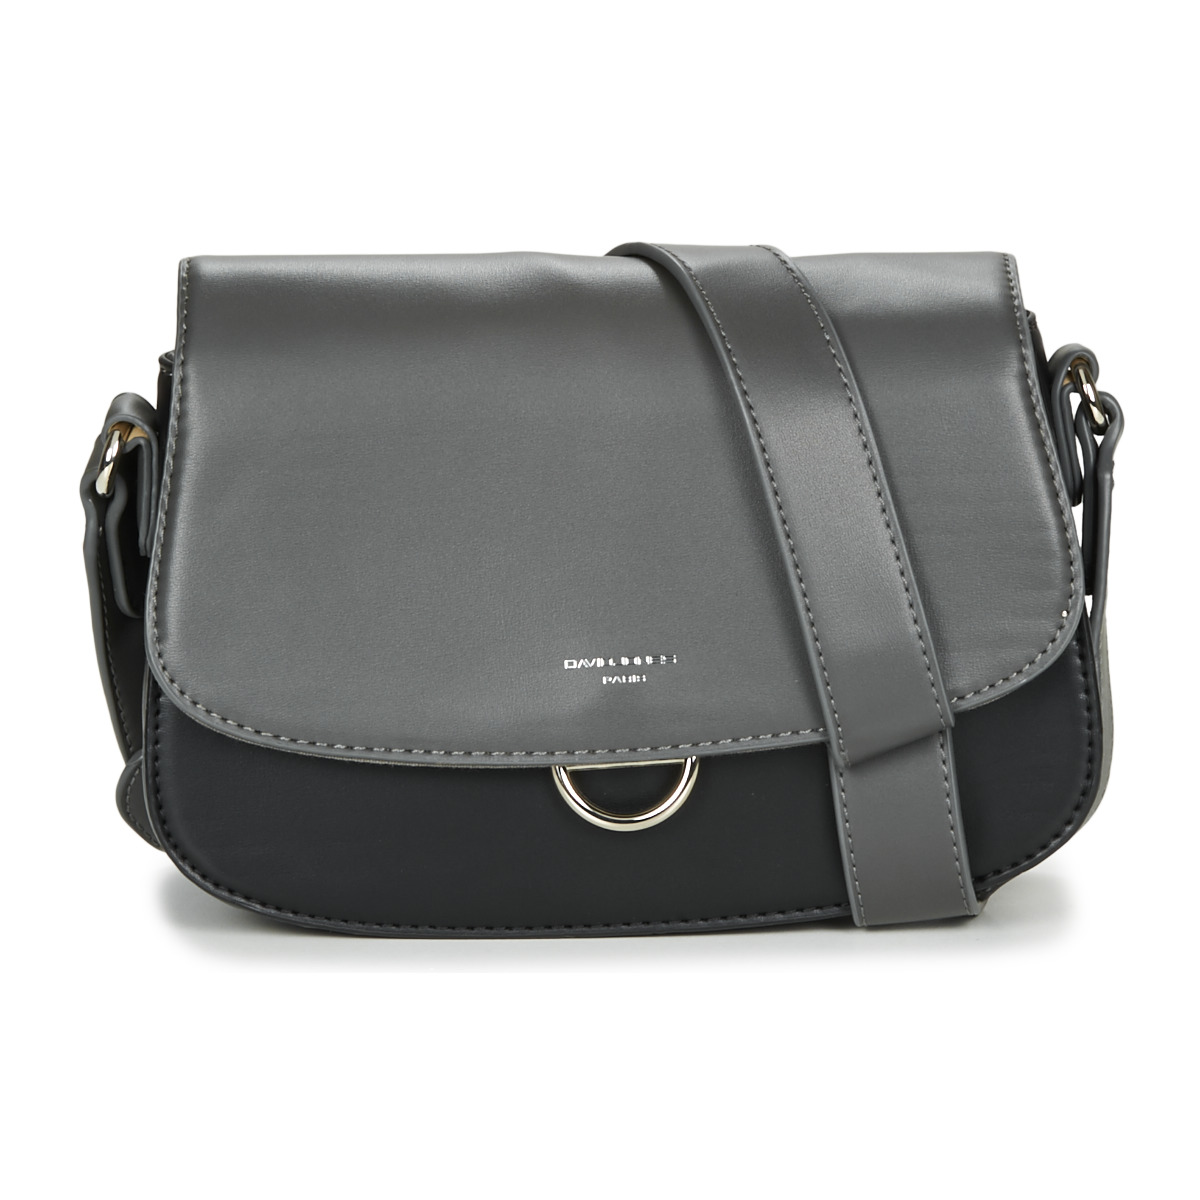 Borsa a tracolla donna David Jones  -  Grigio